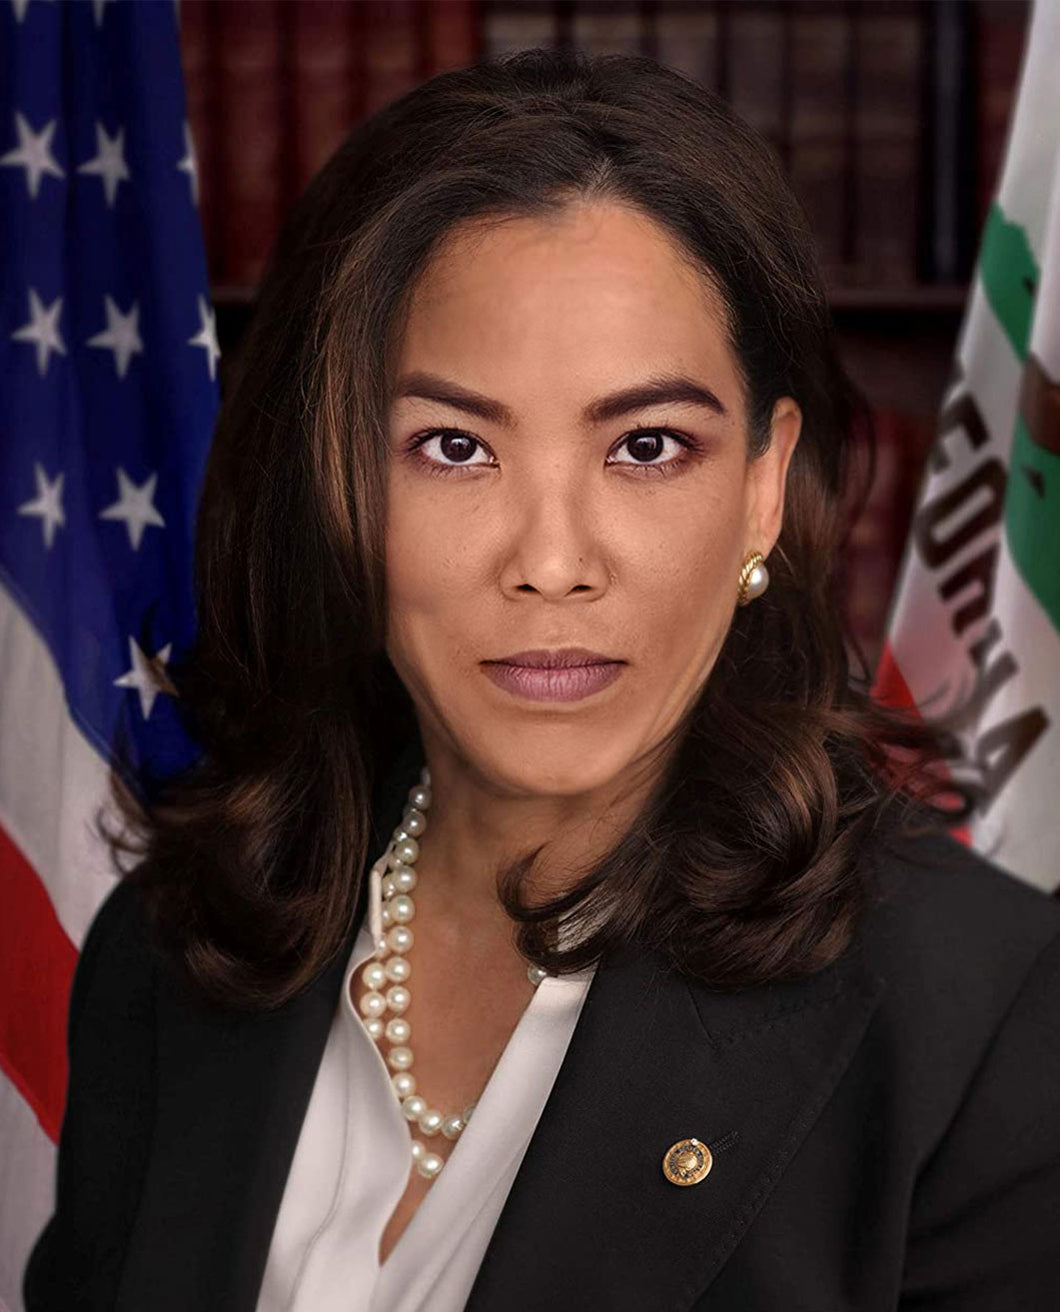 Mrs. Democratic Vice President